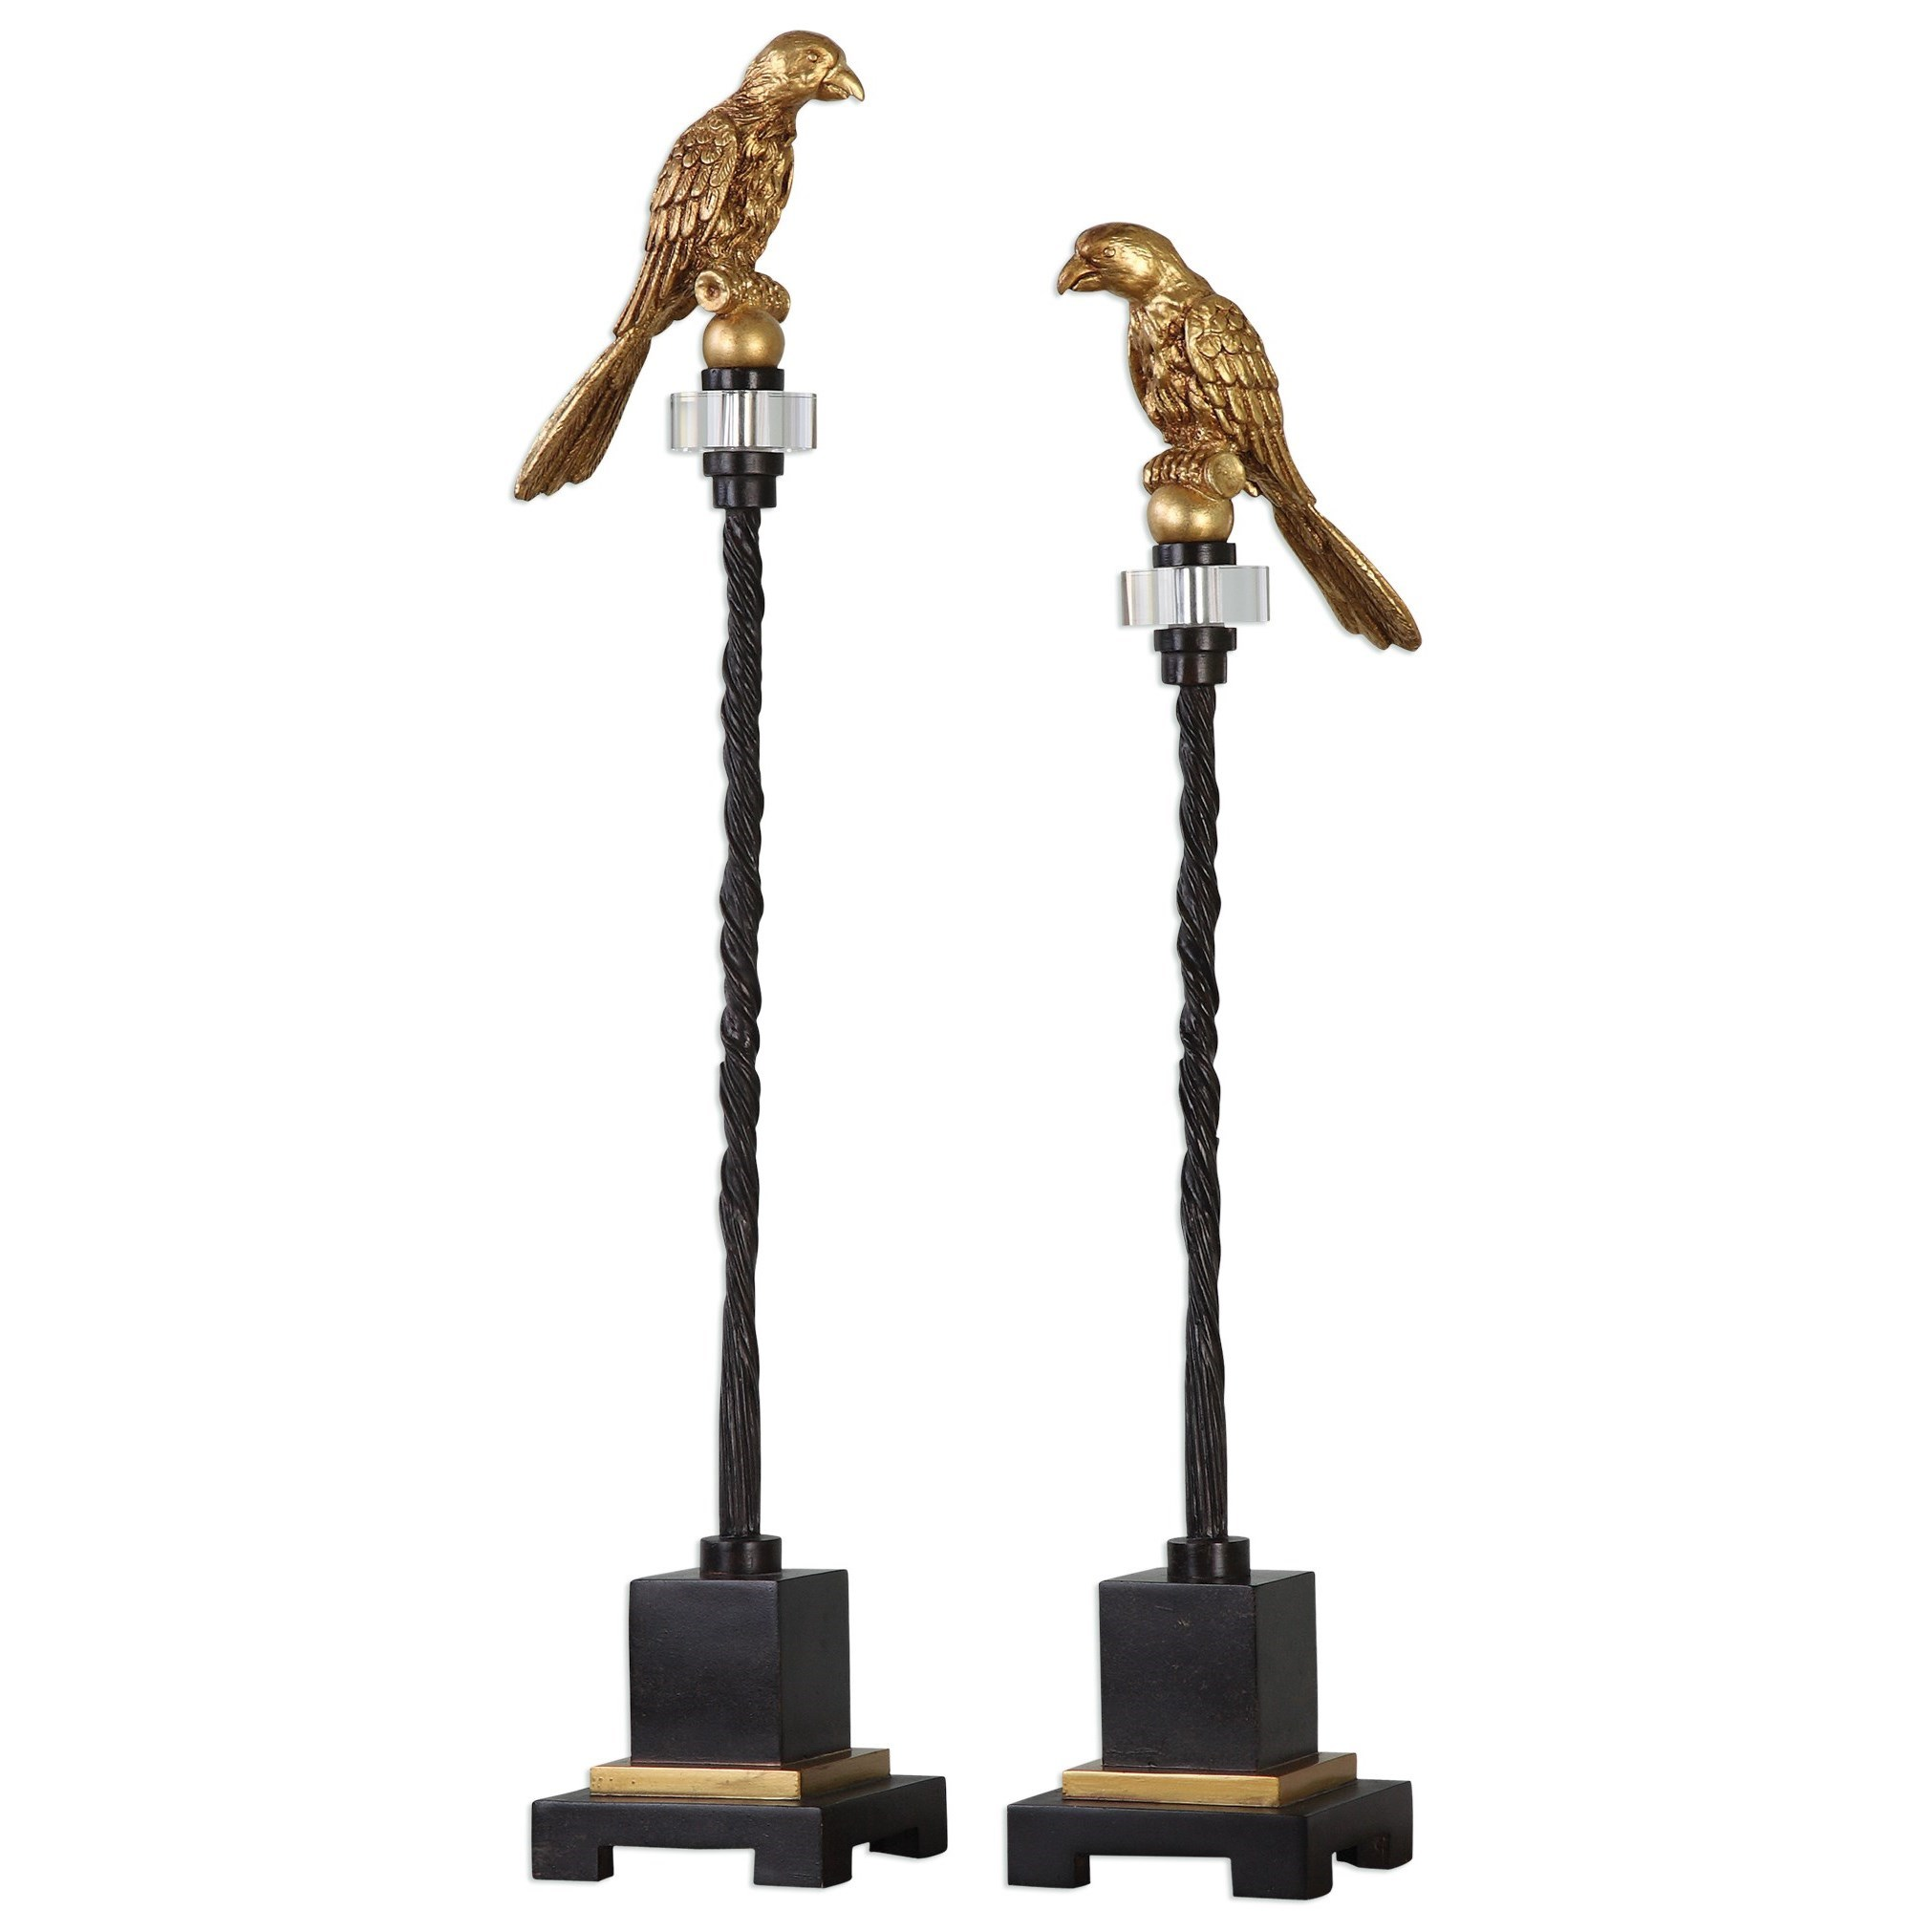 Uttermost Accessories Perched Finials (Set of 2) - Item Number: 20163